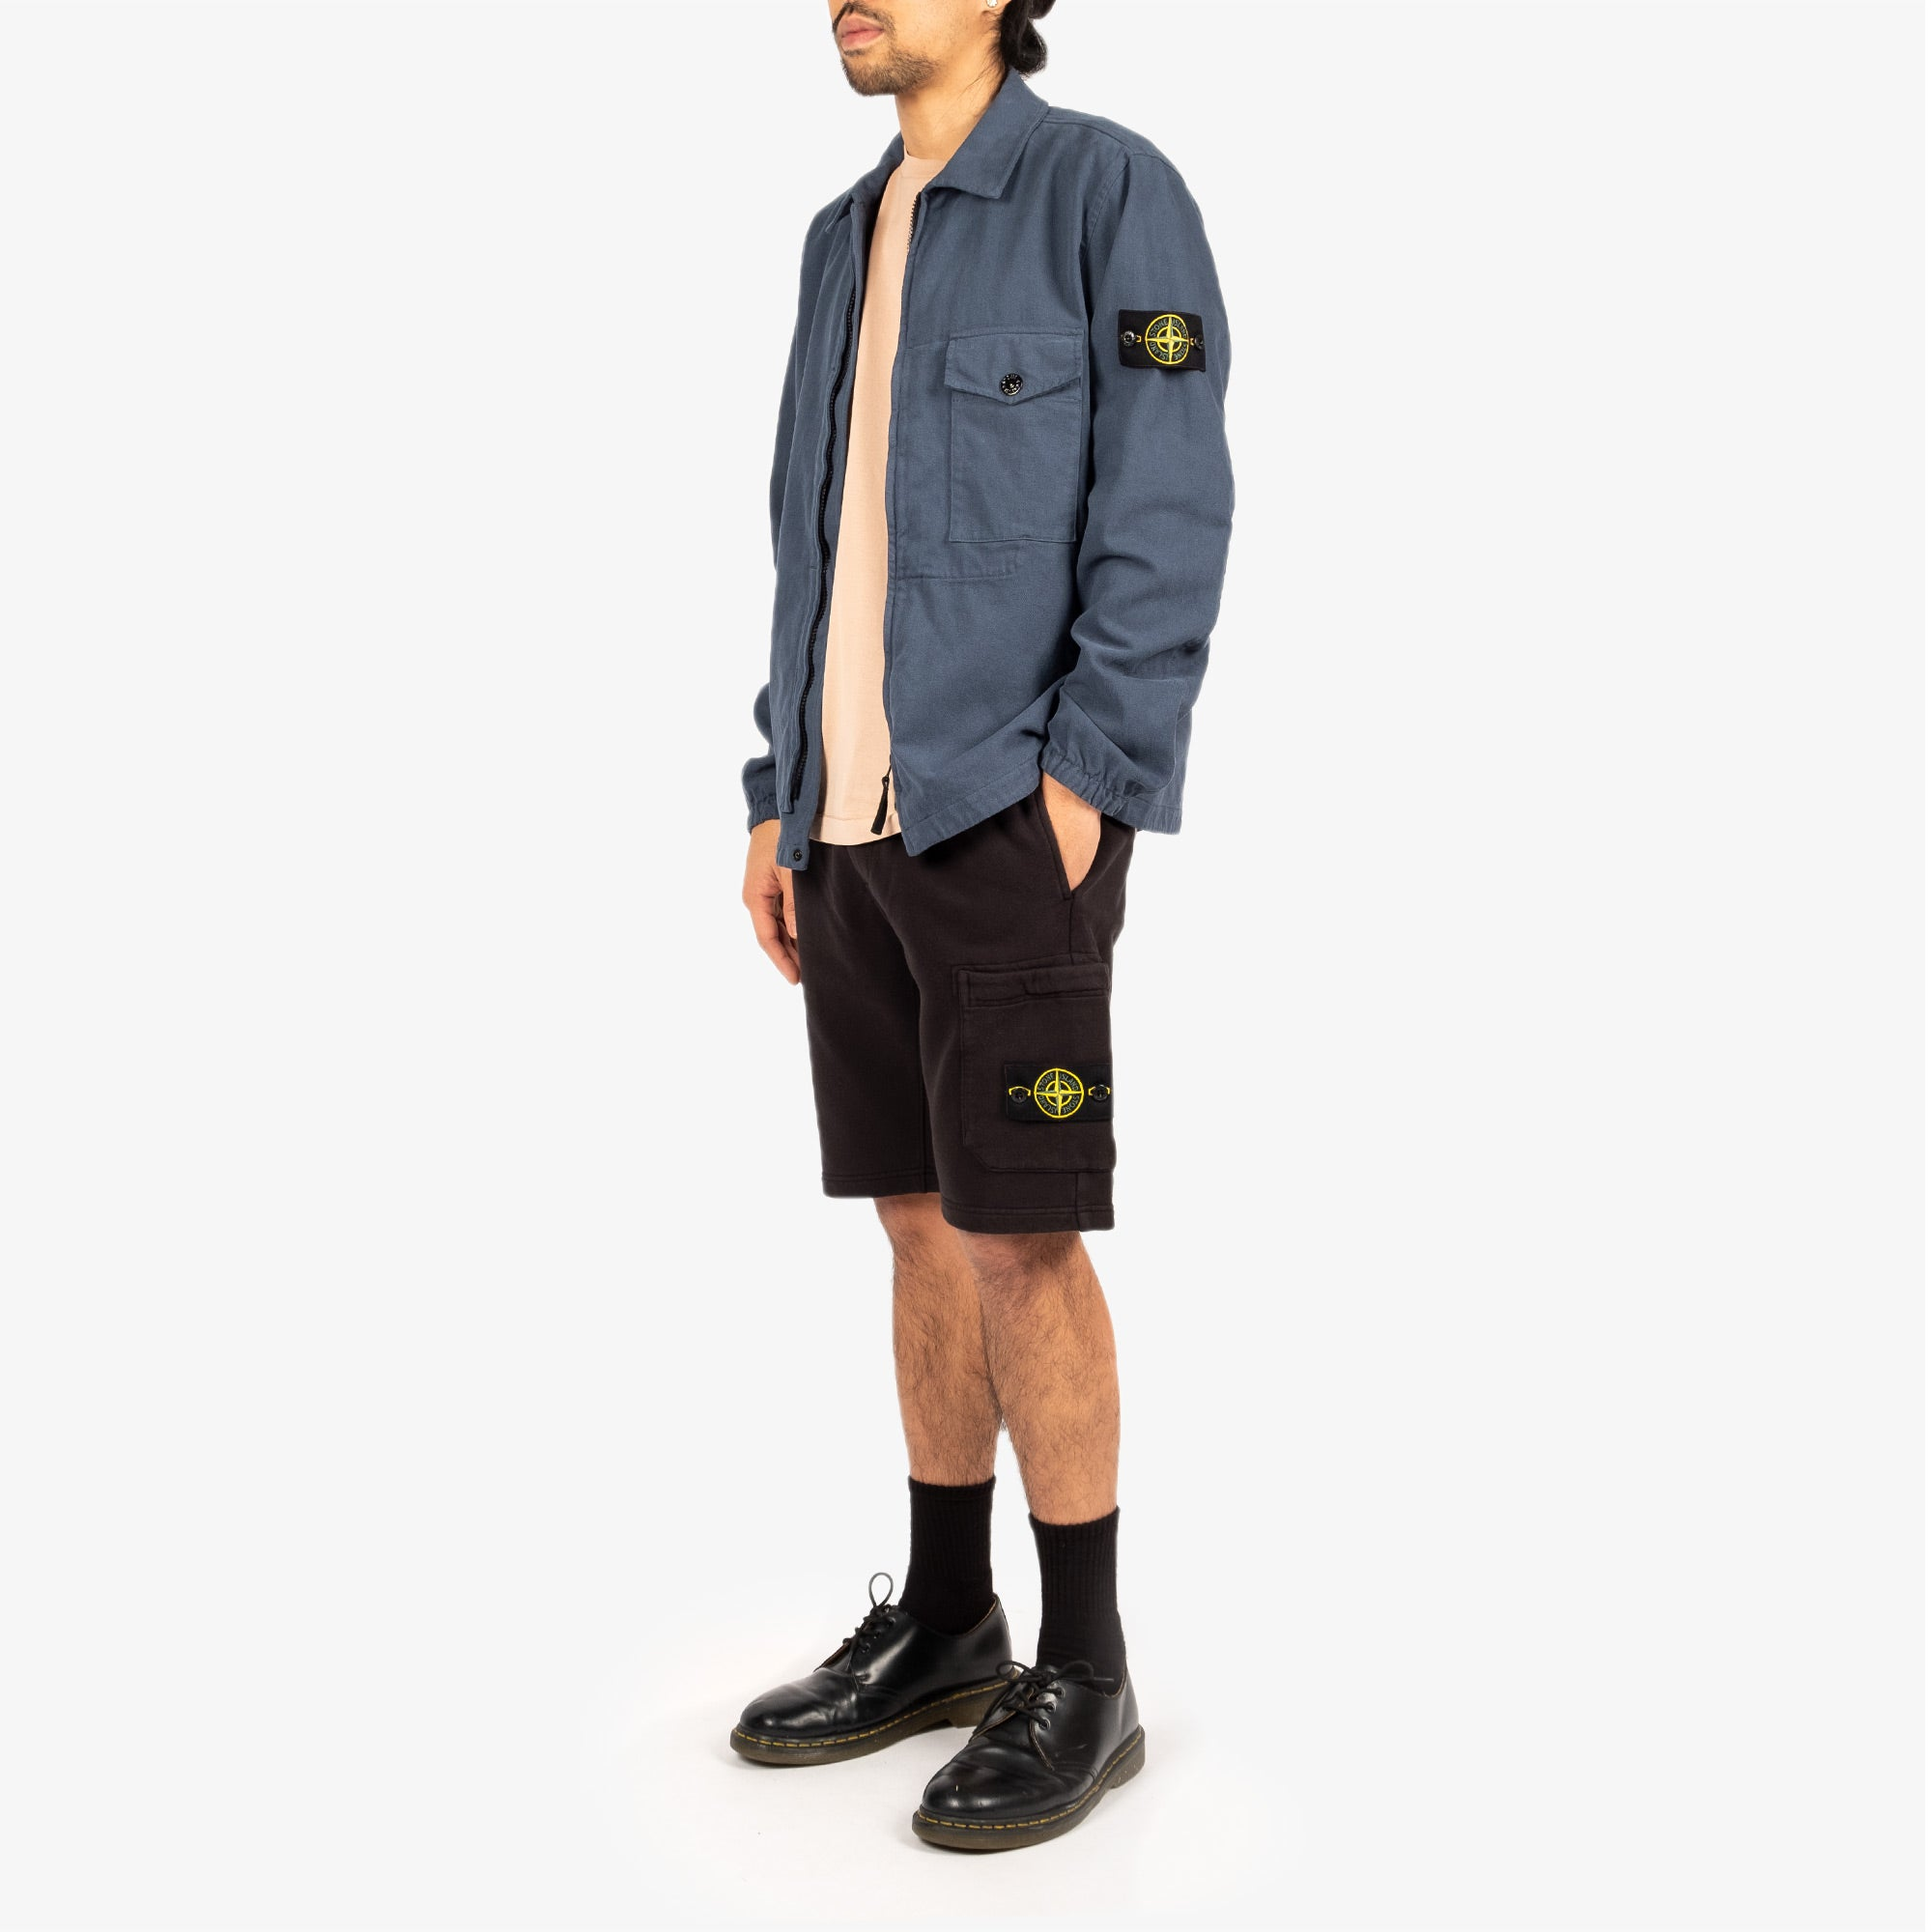 Stone Island Textured Brushed Recycled Cotton Overshirt 10704 - Cobalt Blue 8